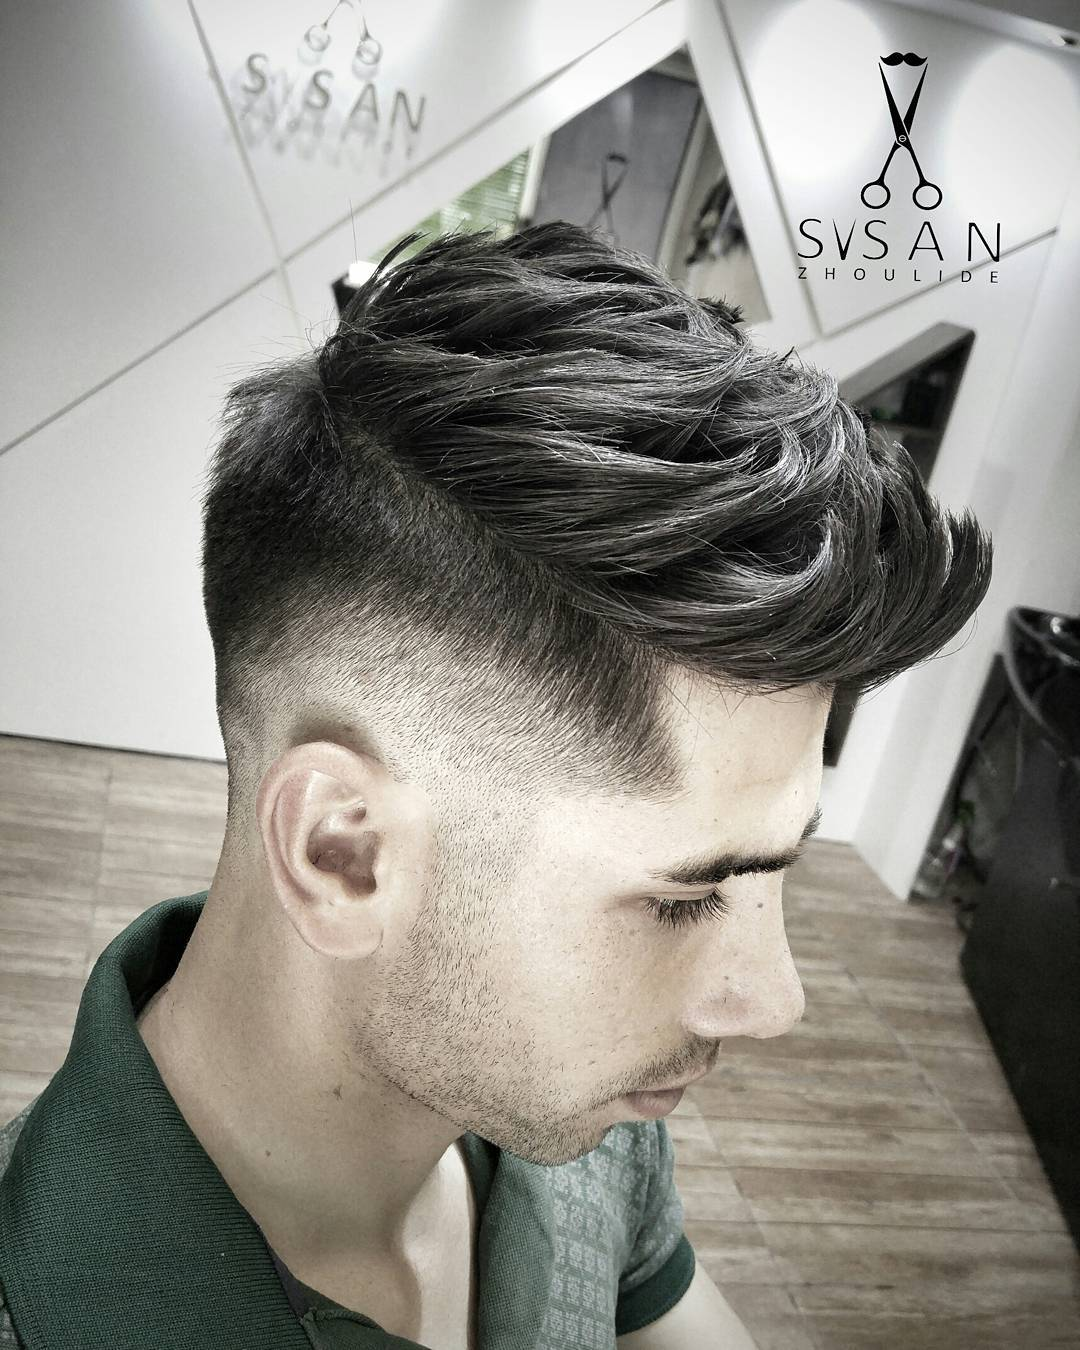 sasanzhoulide-quiff-mens-haircut